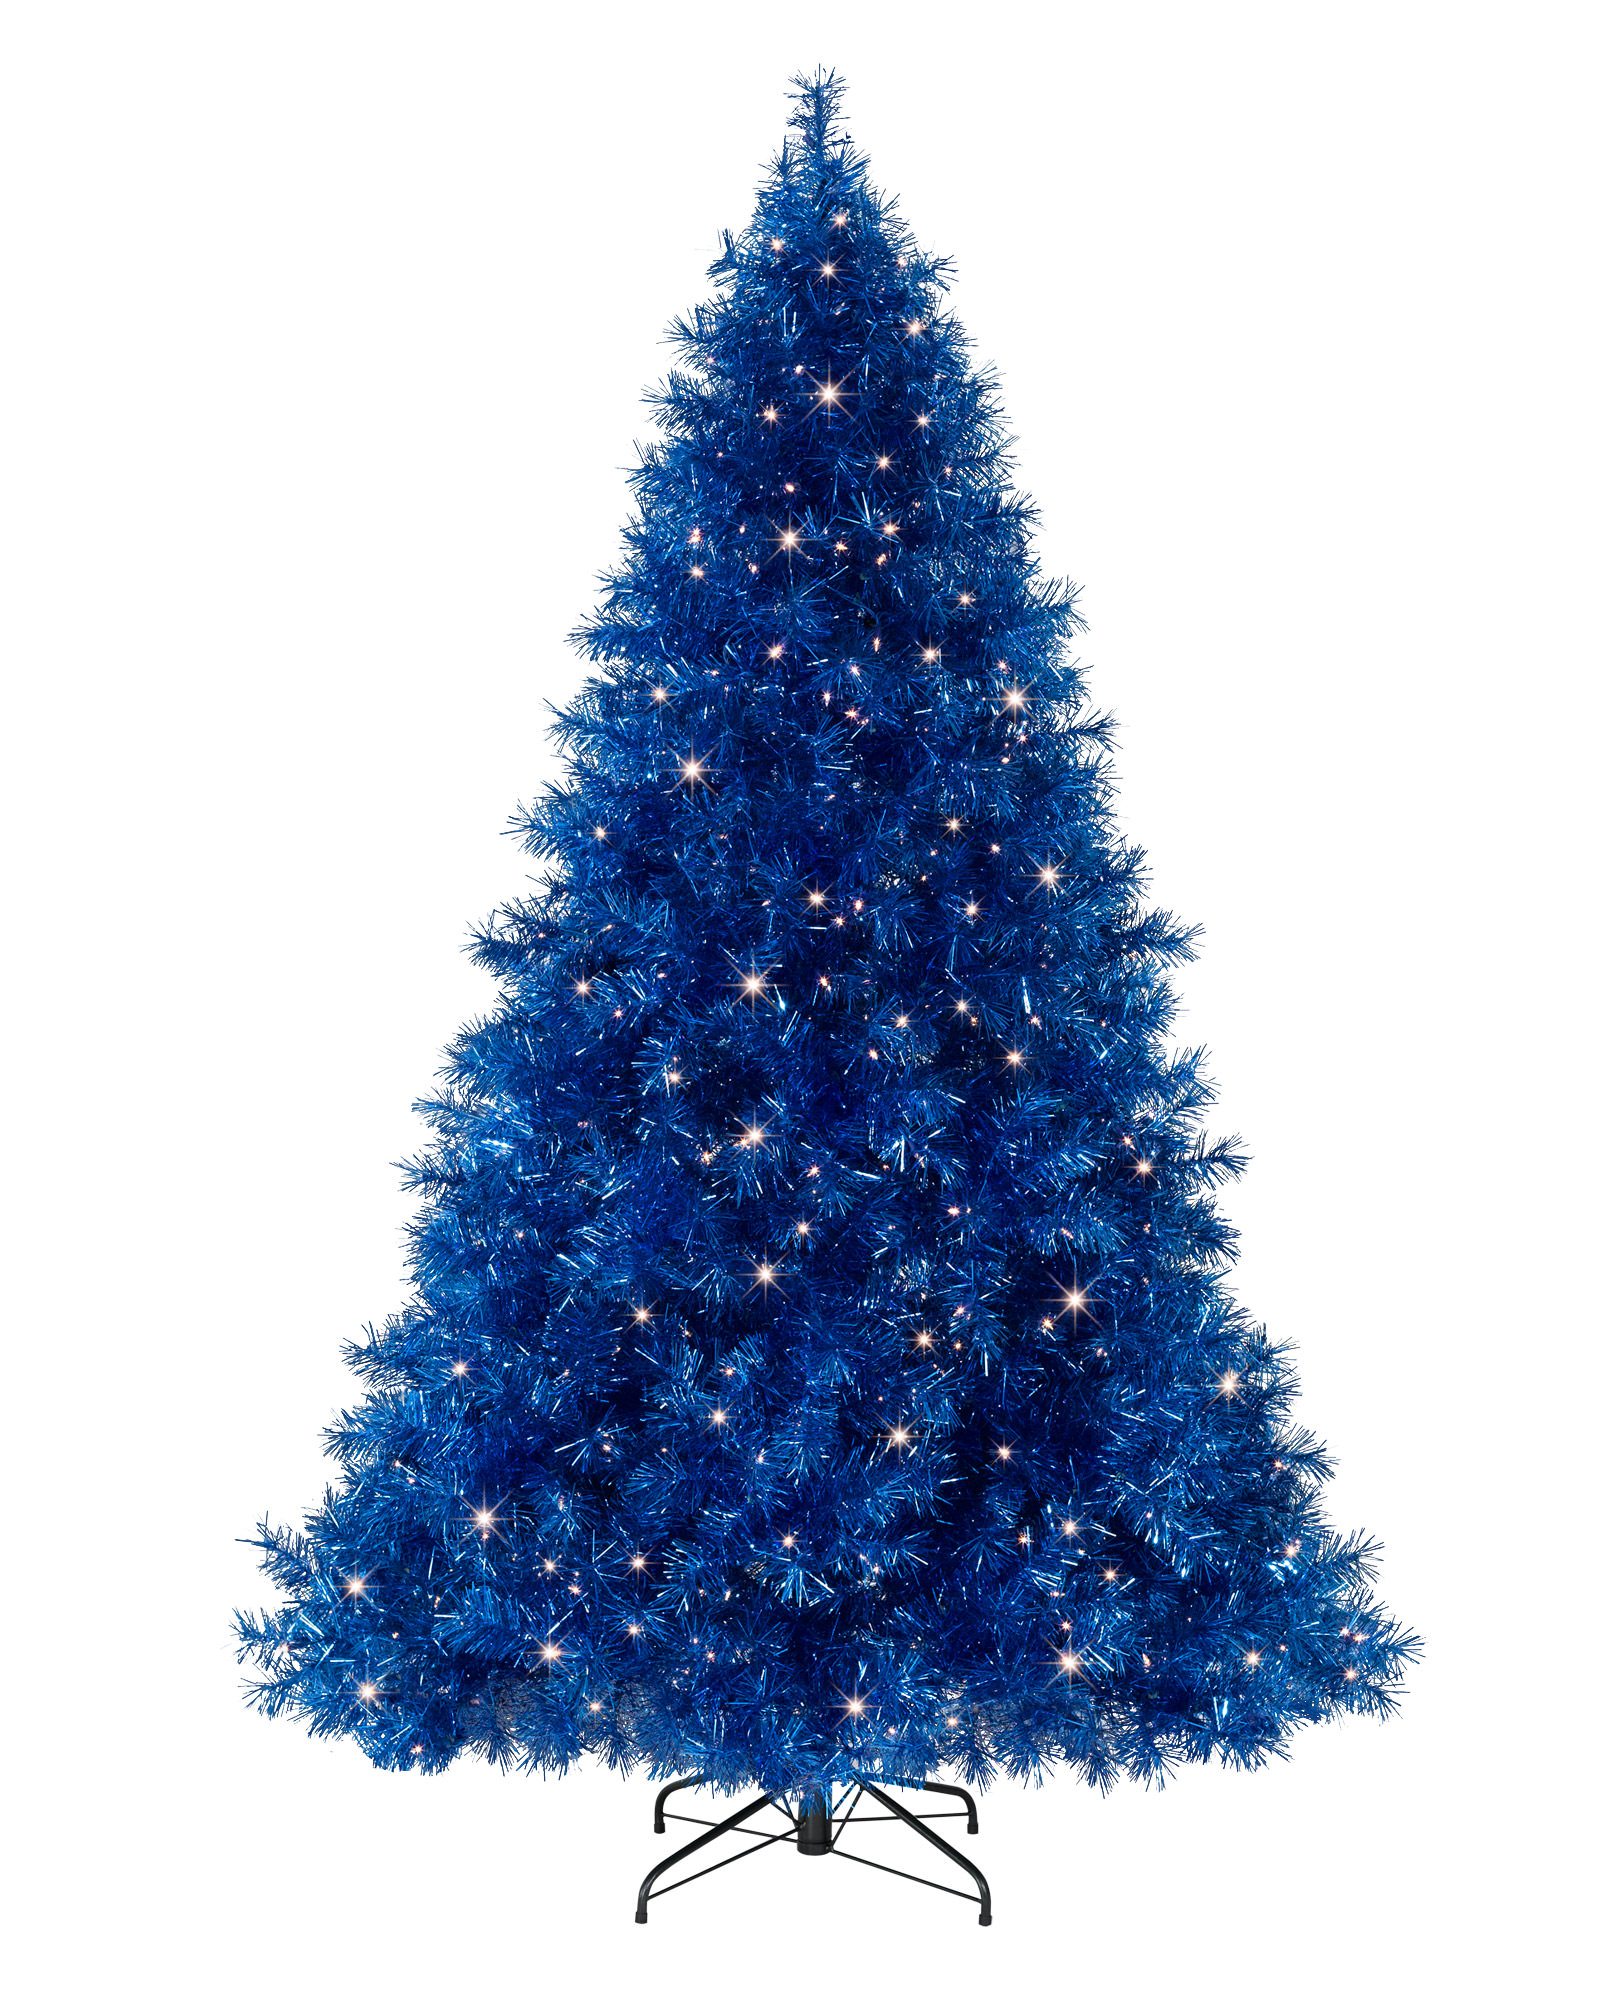 Frosty Tree Clipart Clipground